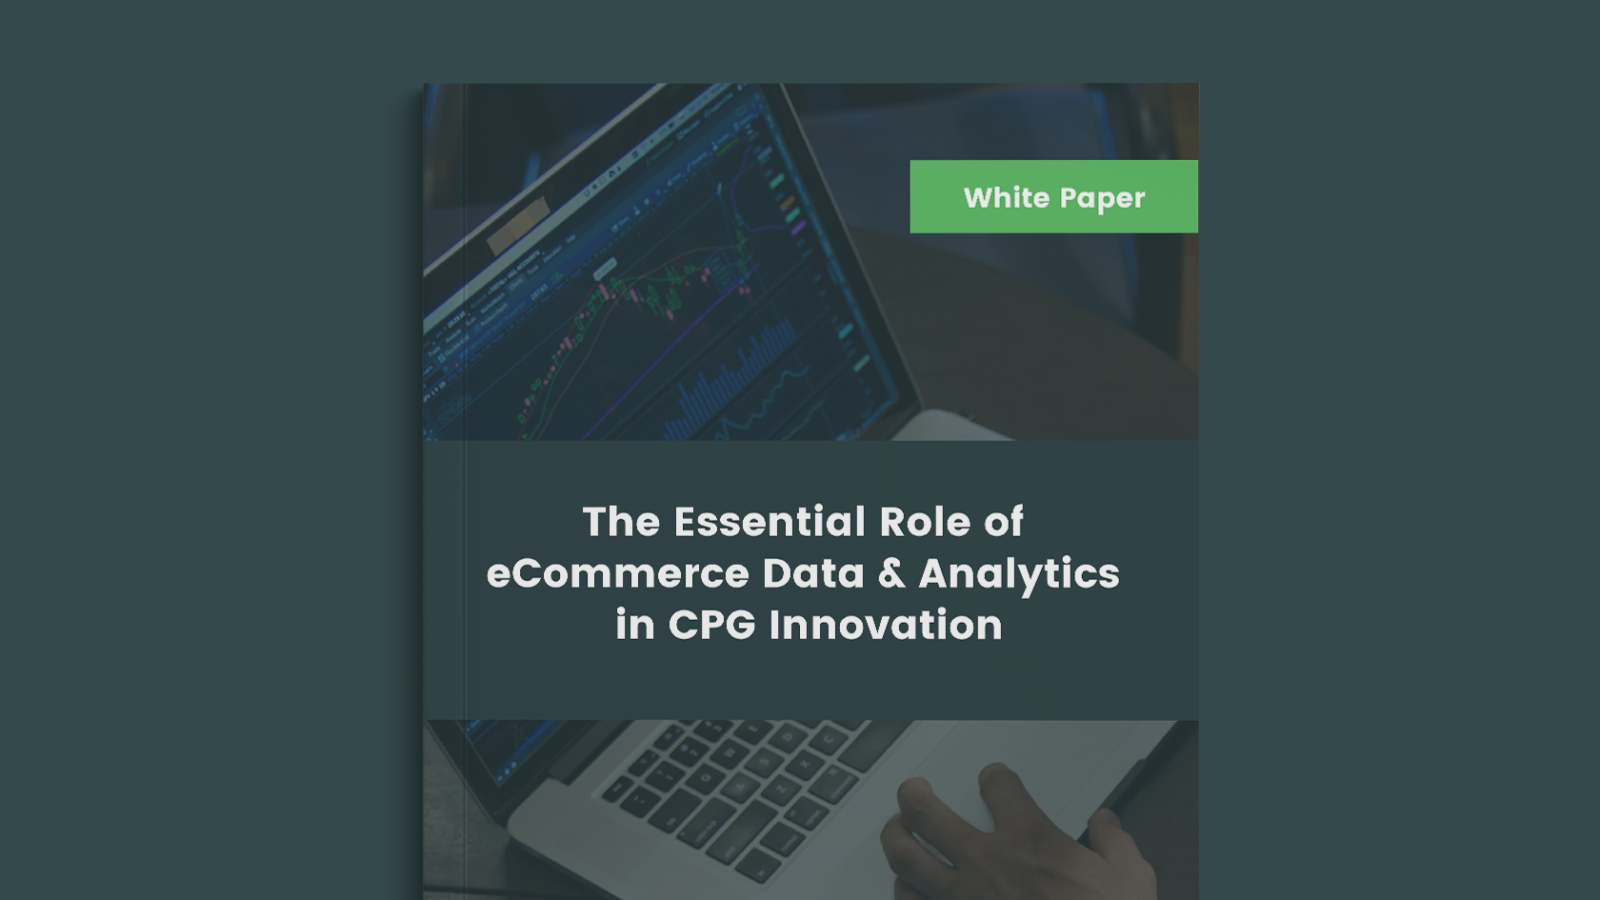 The Essential Role of eCommerce Data & Analytics in CPG Innovation